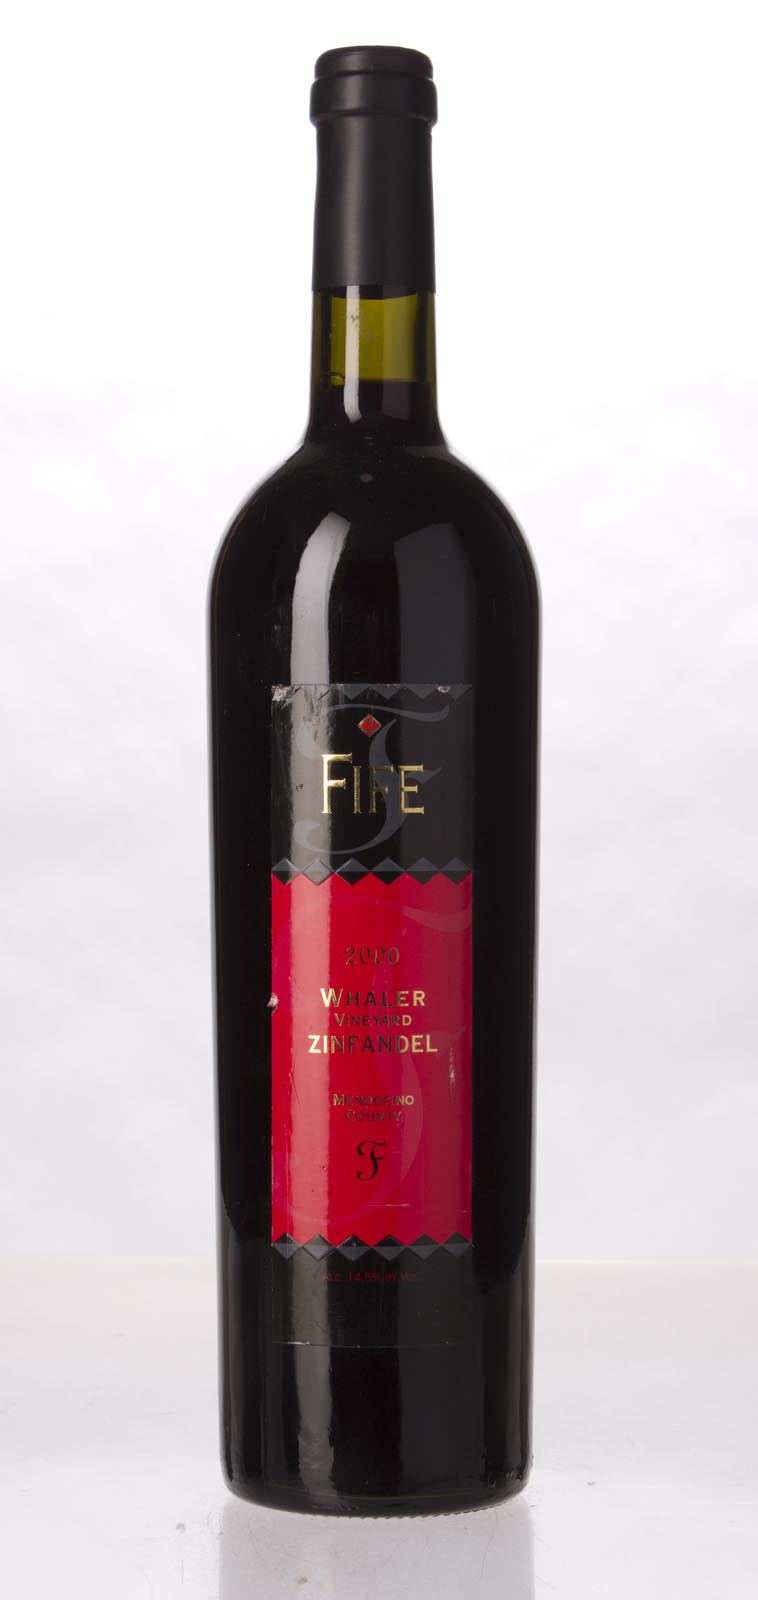 Fife Vineyards Zinfandel Whaler Vineyard 2000, 750mL () from The BPW - Merchants of rare and fine wines.